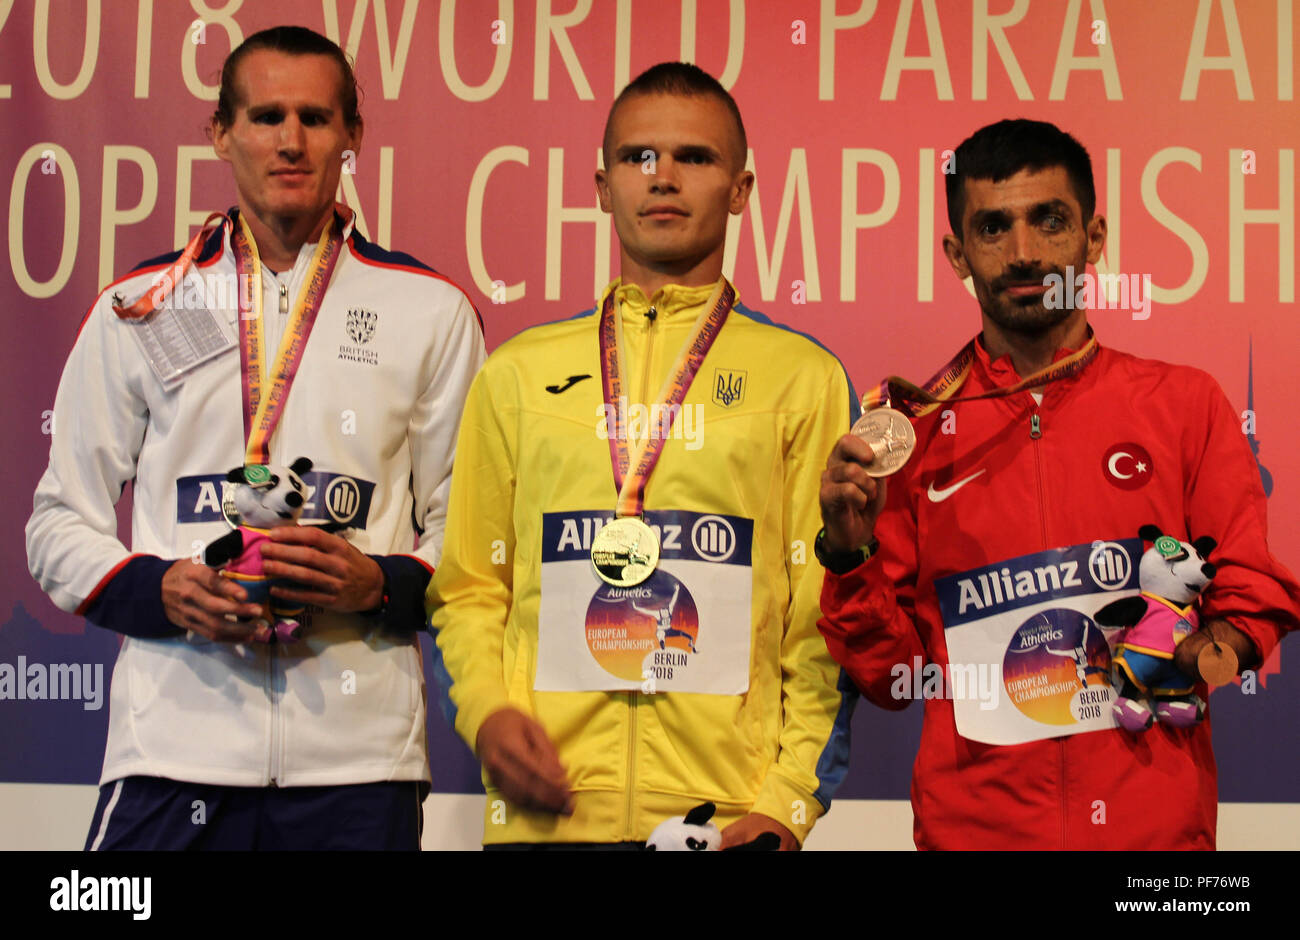 Berlin, Germany. 20th August 2018. David Devine and other athletes pose with their medals on Day 1 of the World Para Athletics European Championships in Berlin, Germany Credit: Ben Booth/Alamy Live News - Stock Image